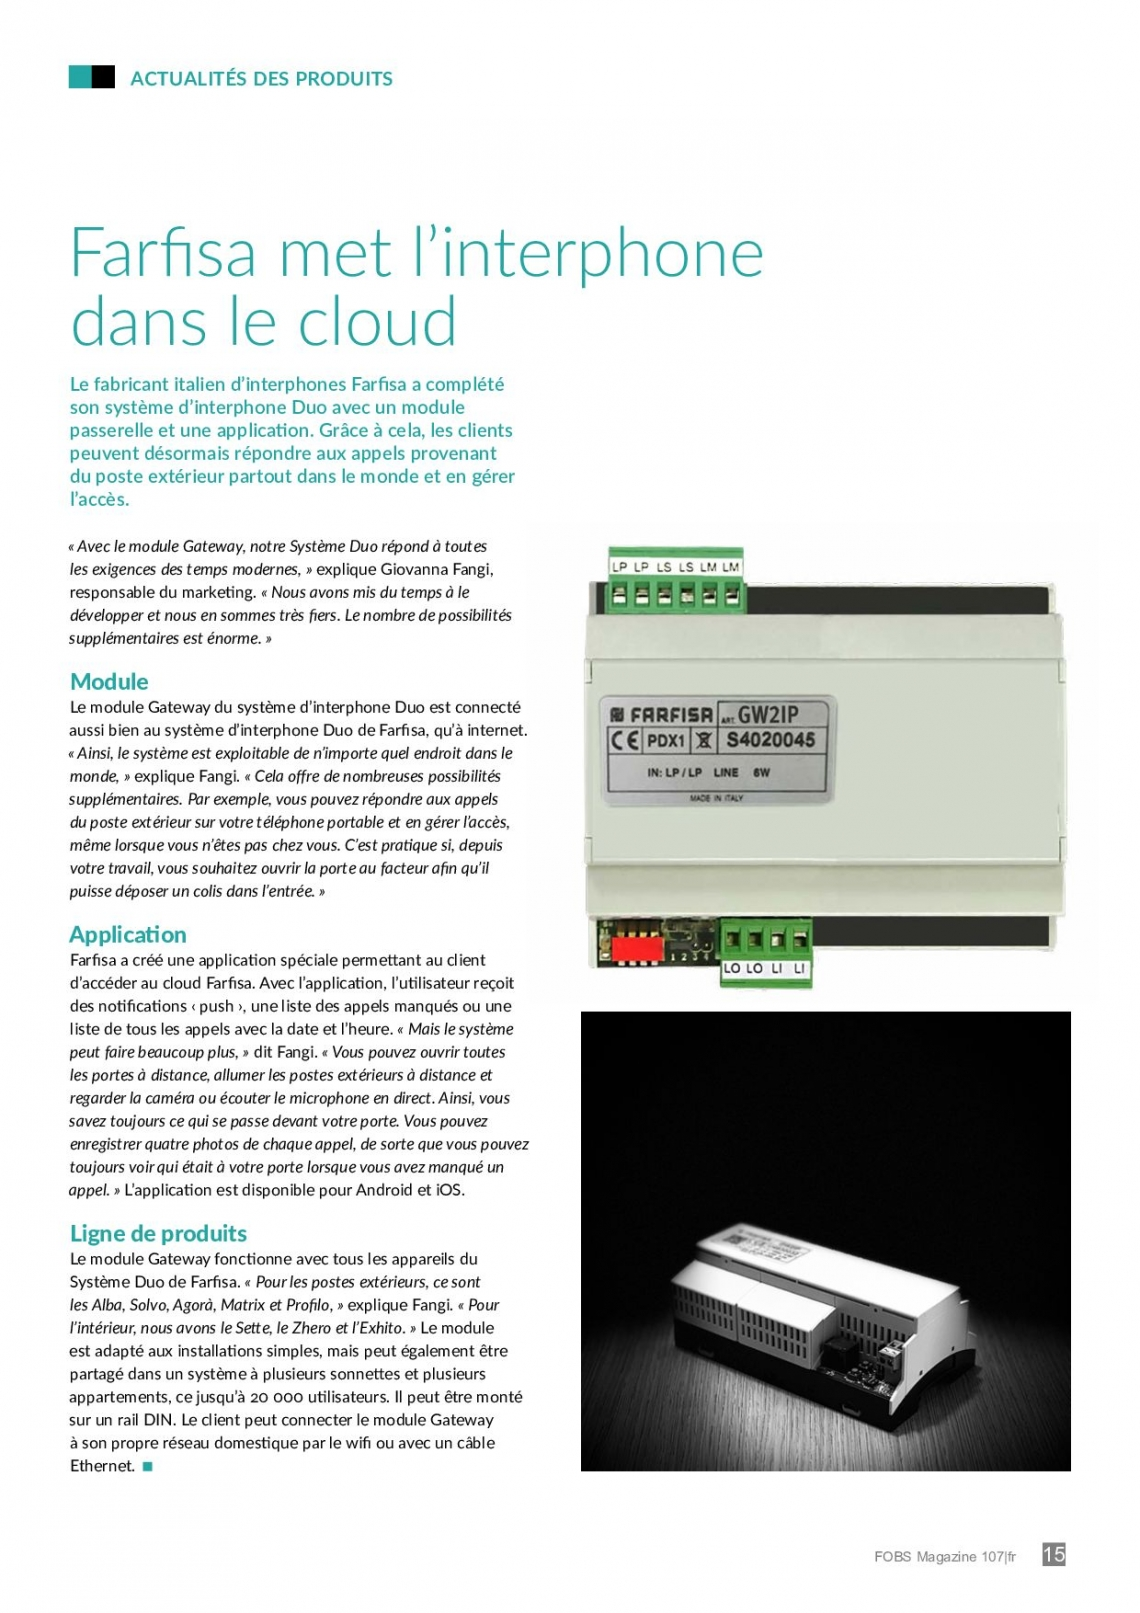 Farfisa met l'interphone dans le cloud